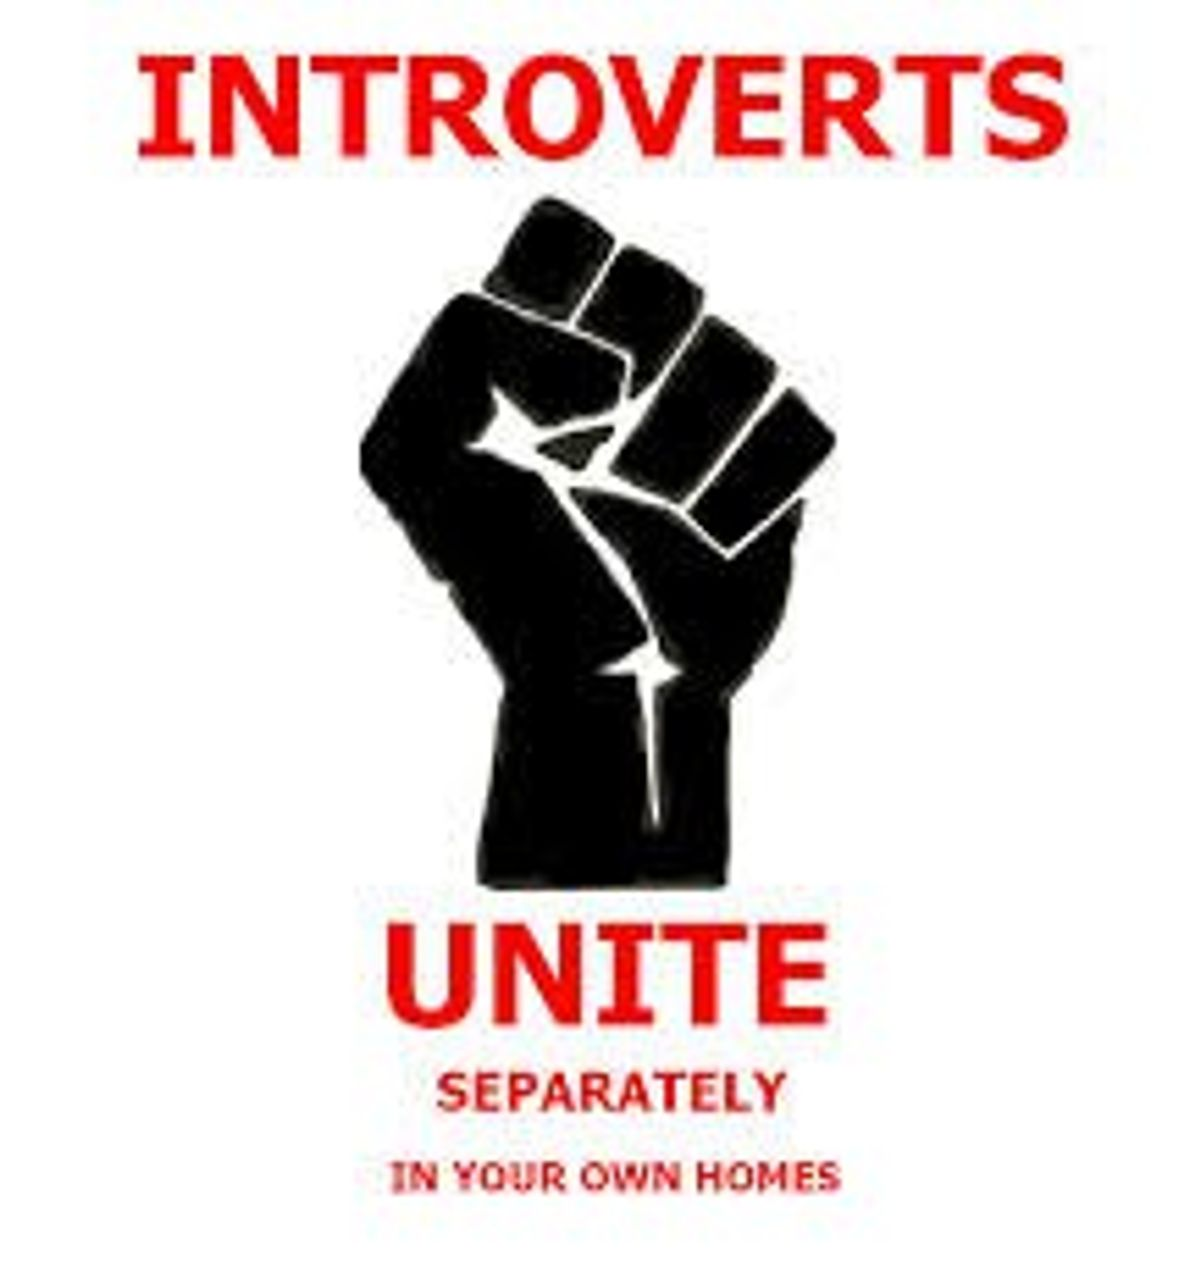 10 Common Misconceptions About Introverts